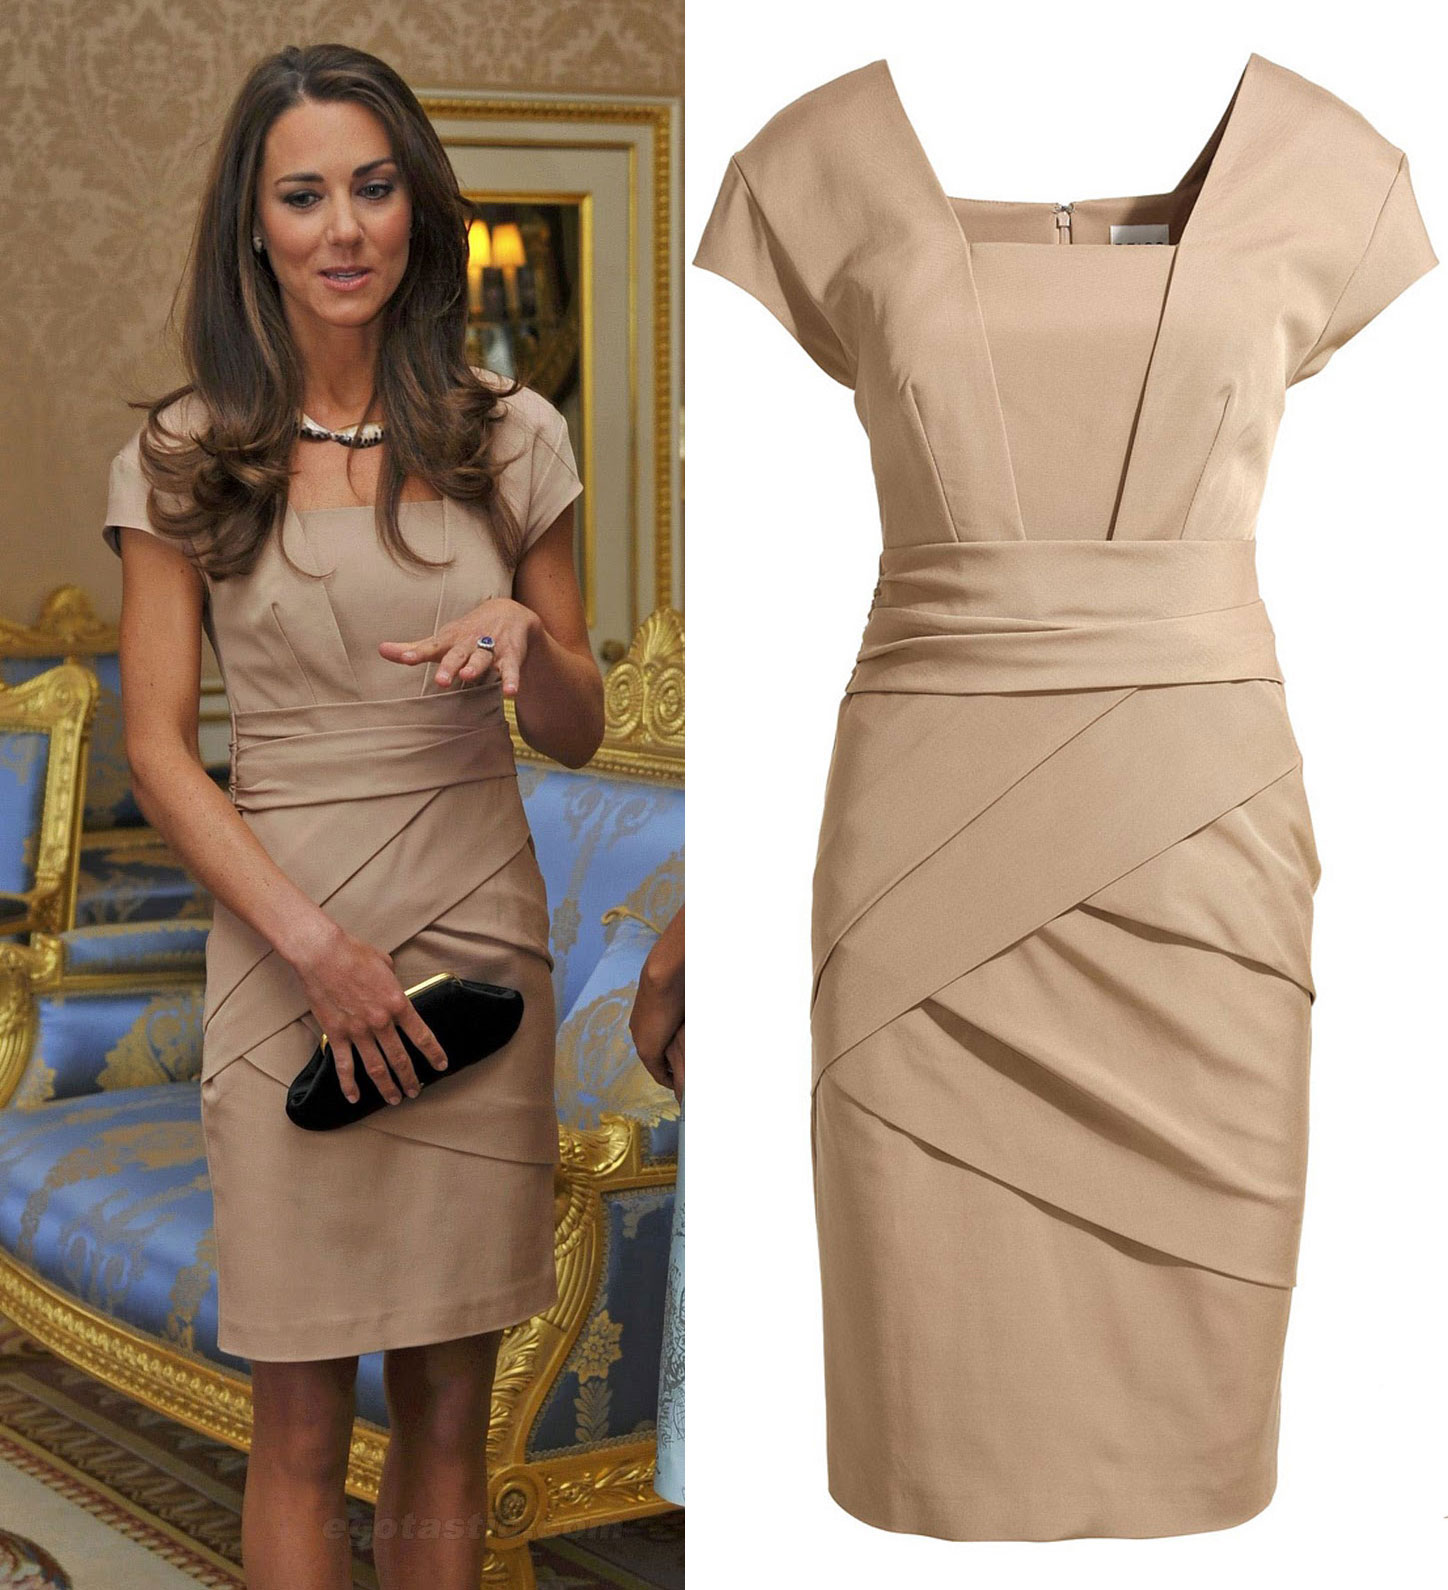 Elegant Princess Kate Royal Grace Tan Bandage Dress Casual ...